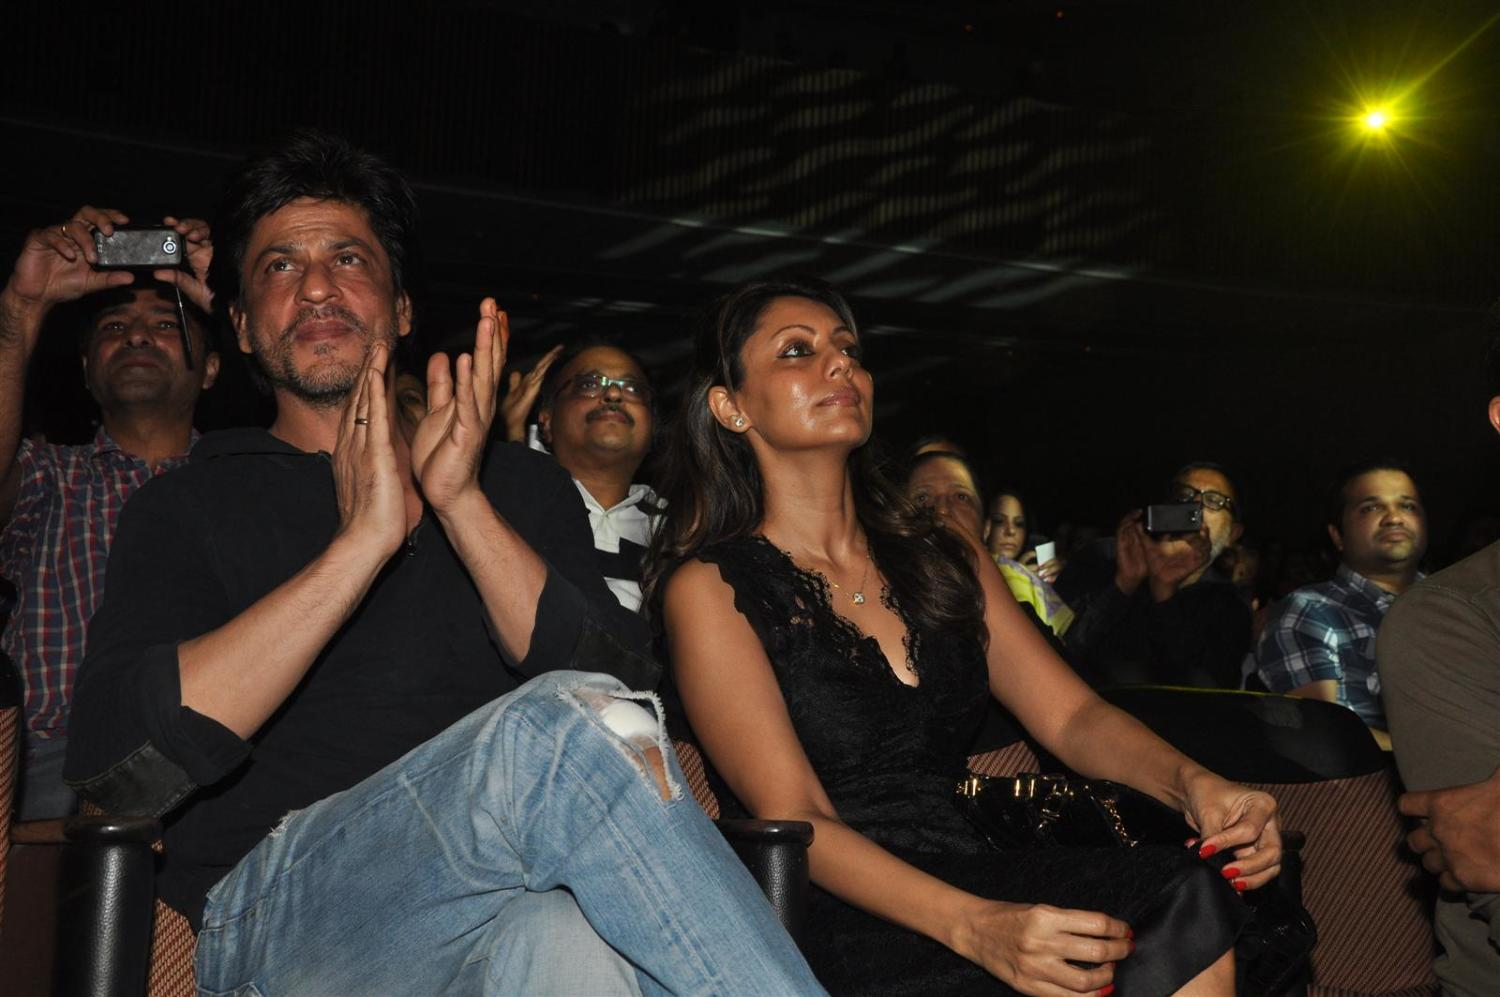 shahrukh khan with wife gauri checking out dance